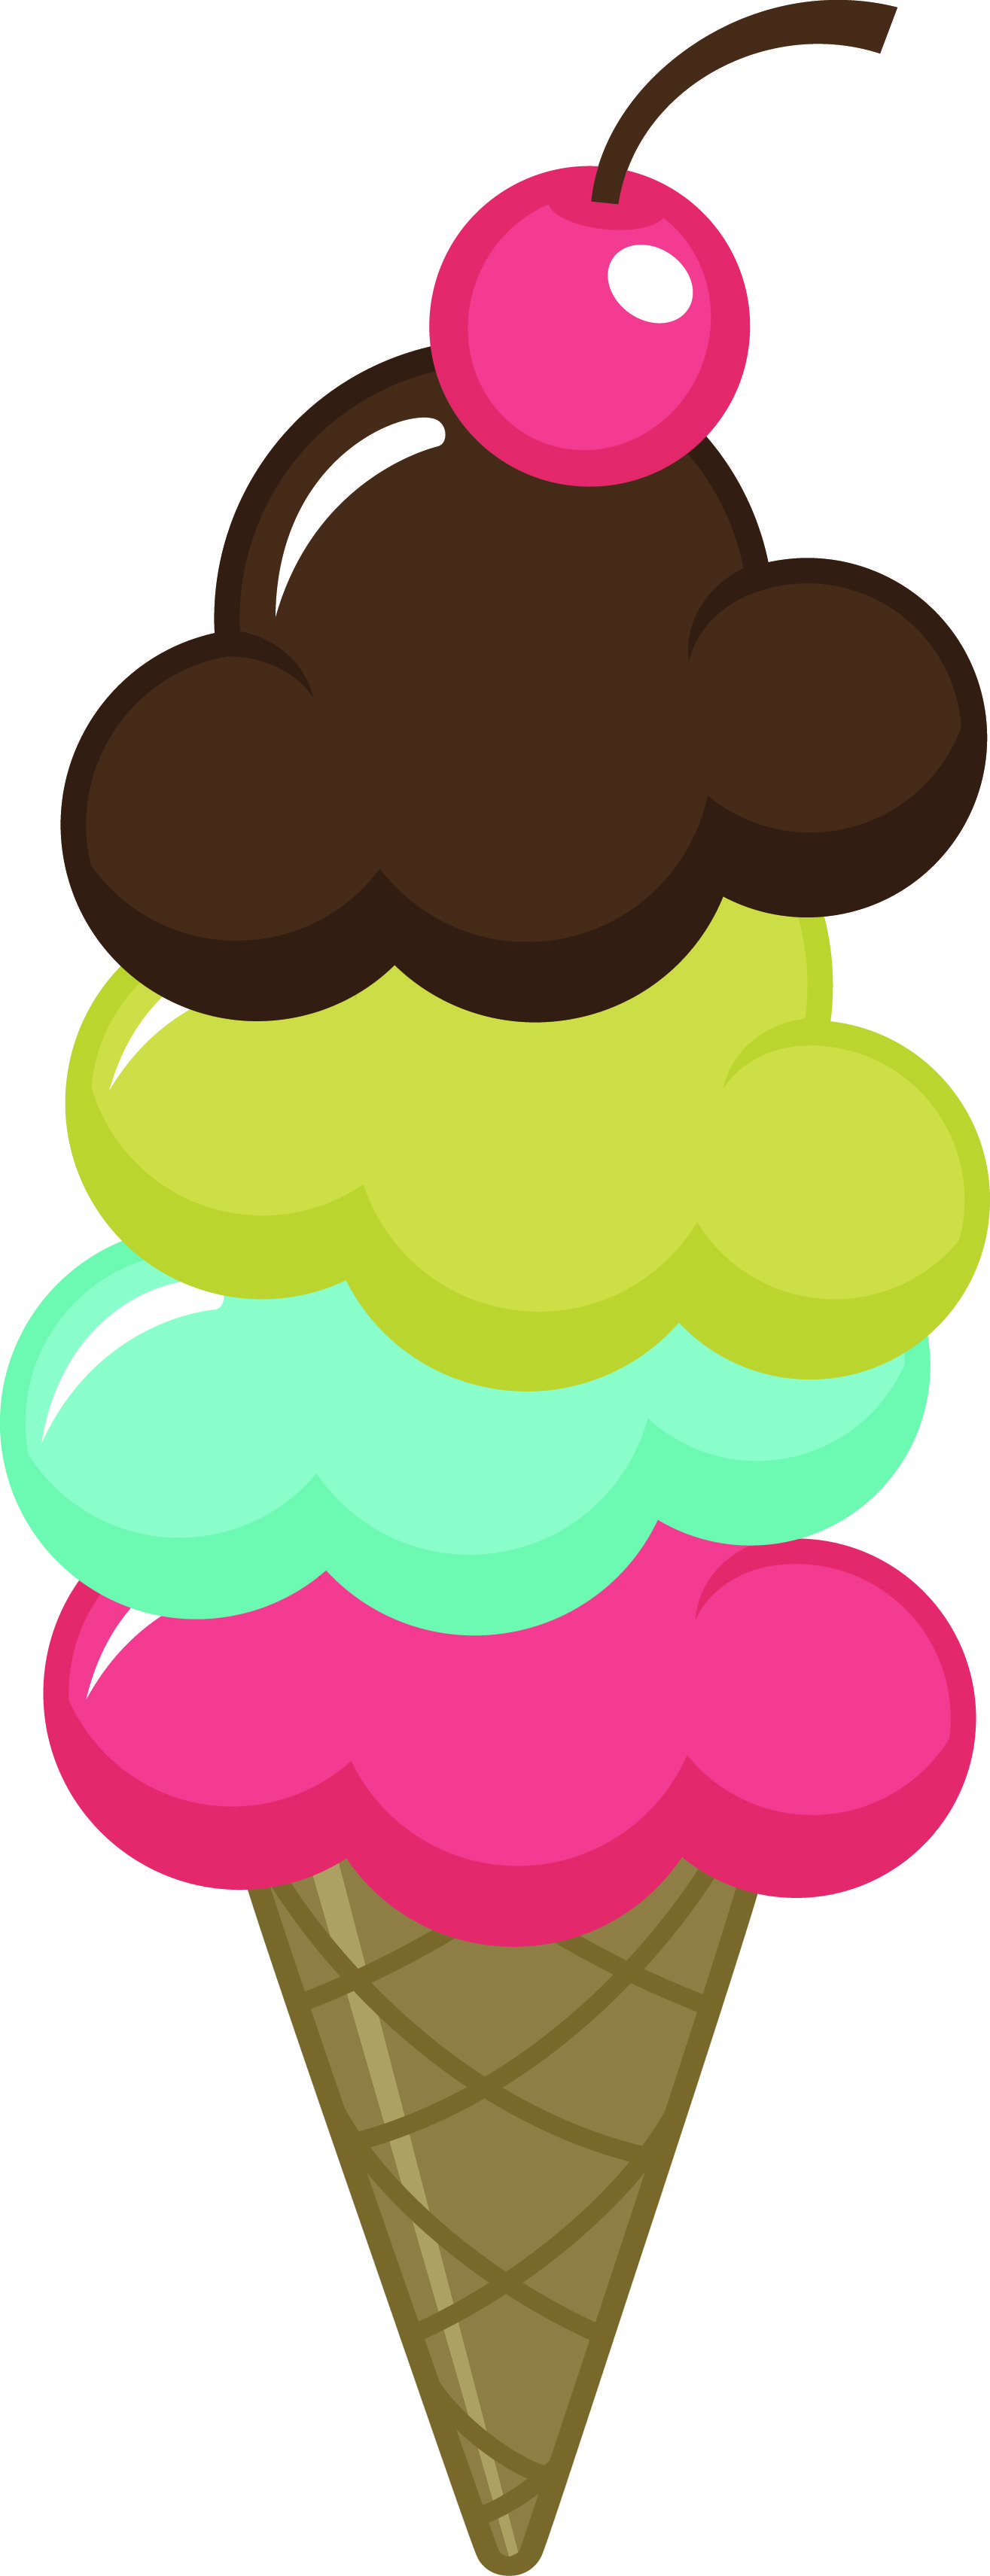 1315x3423 Neoteric Design Ice Cream Clipart Clip Art Images Sprinkles Cone